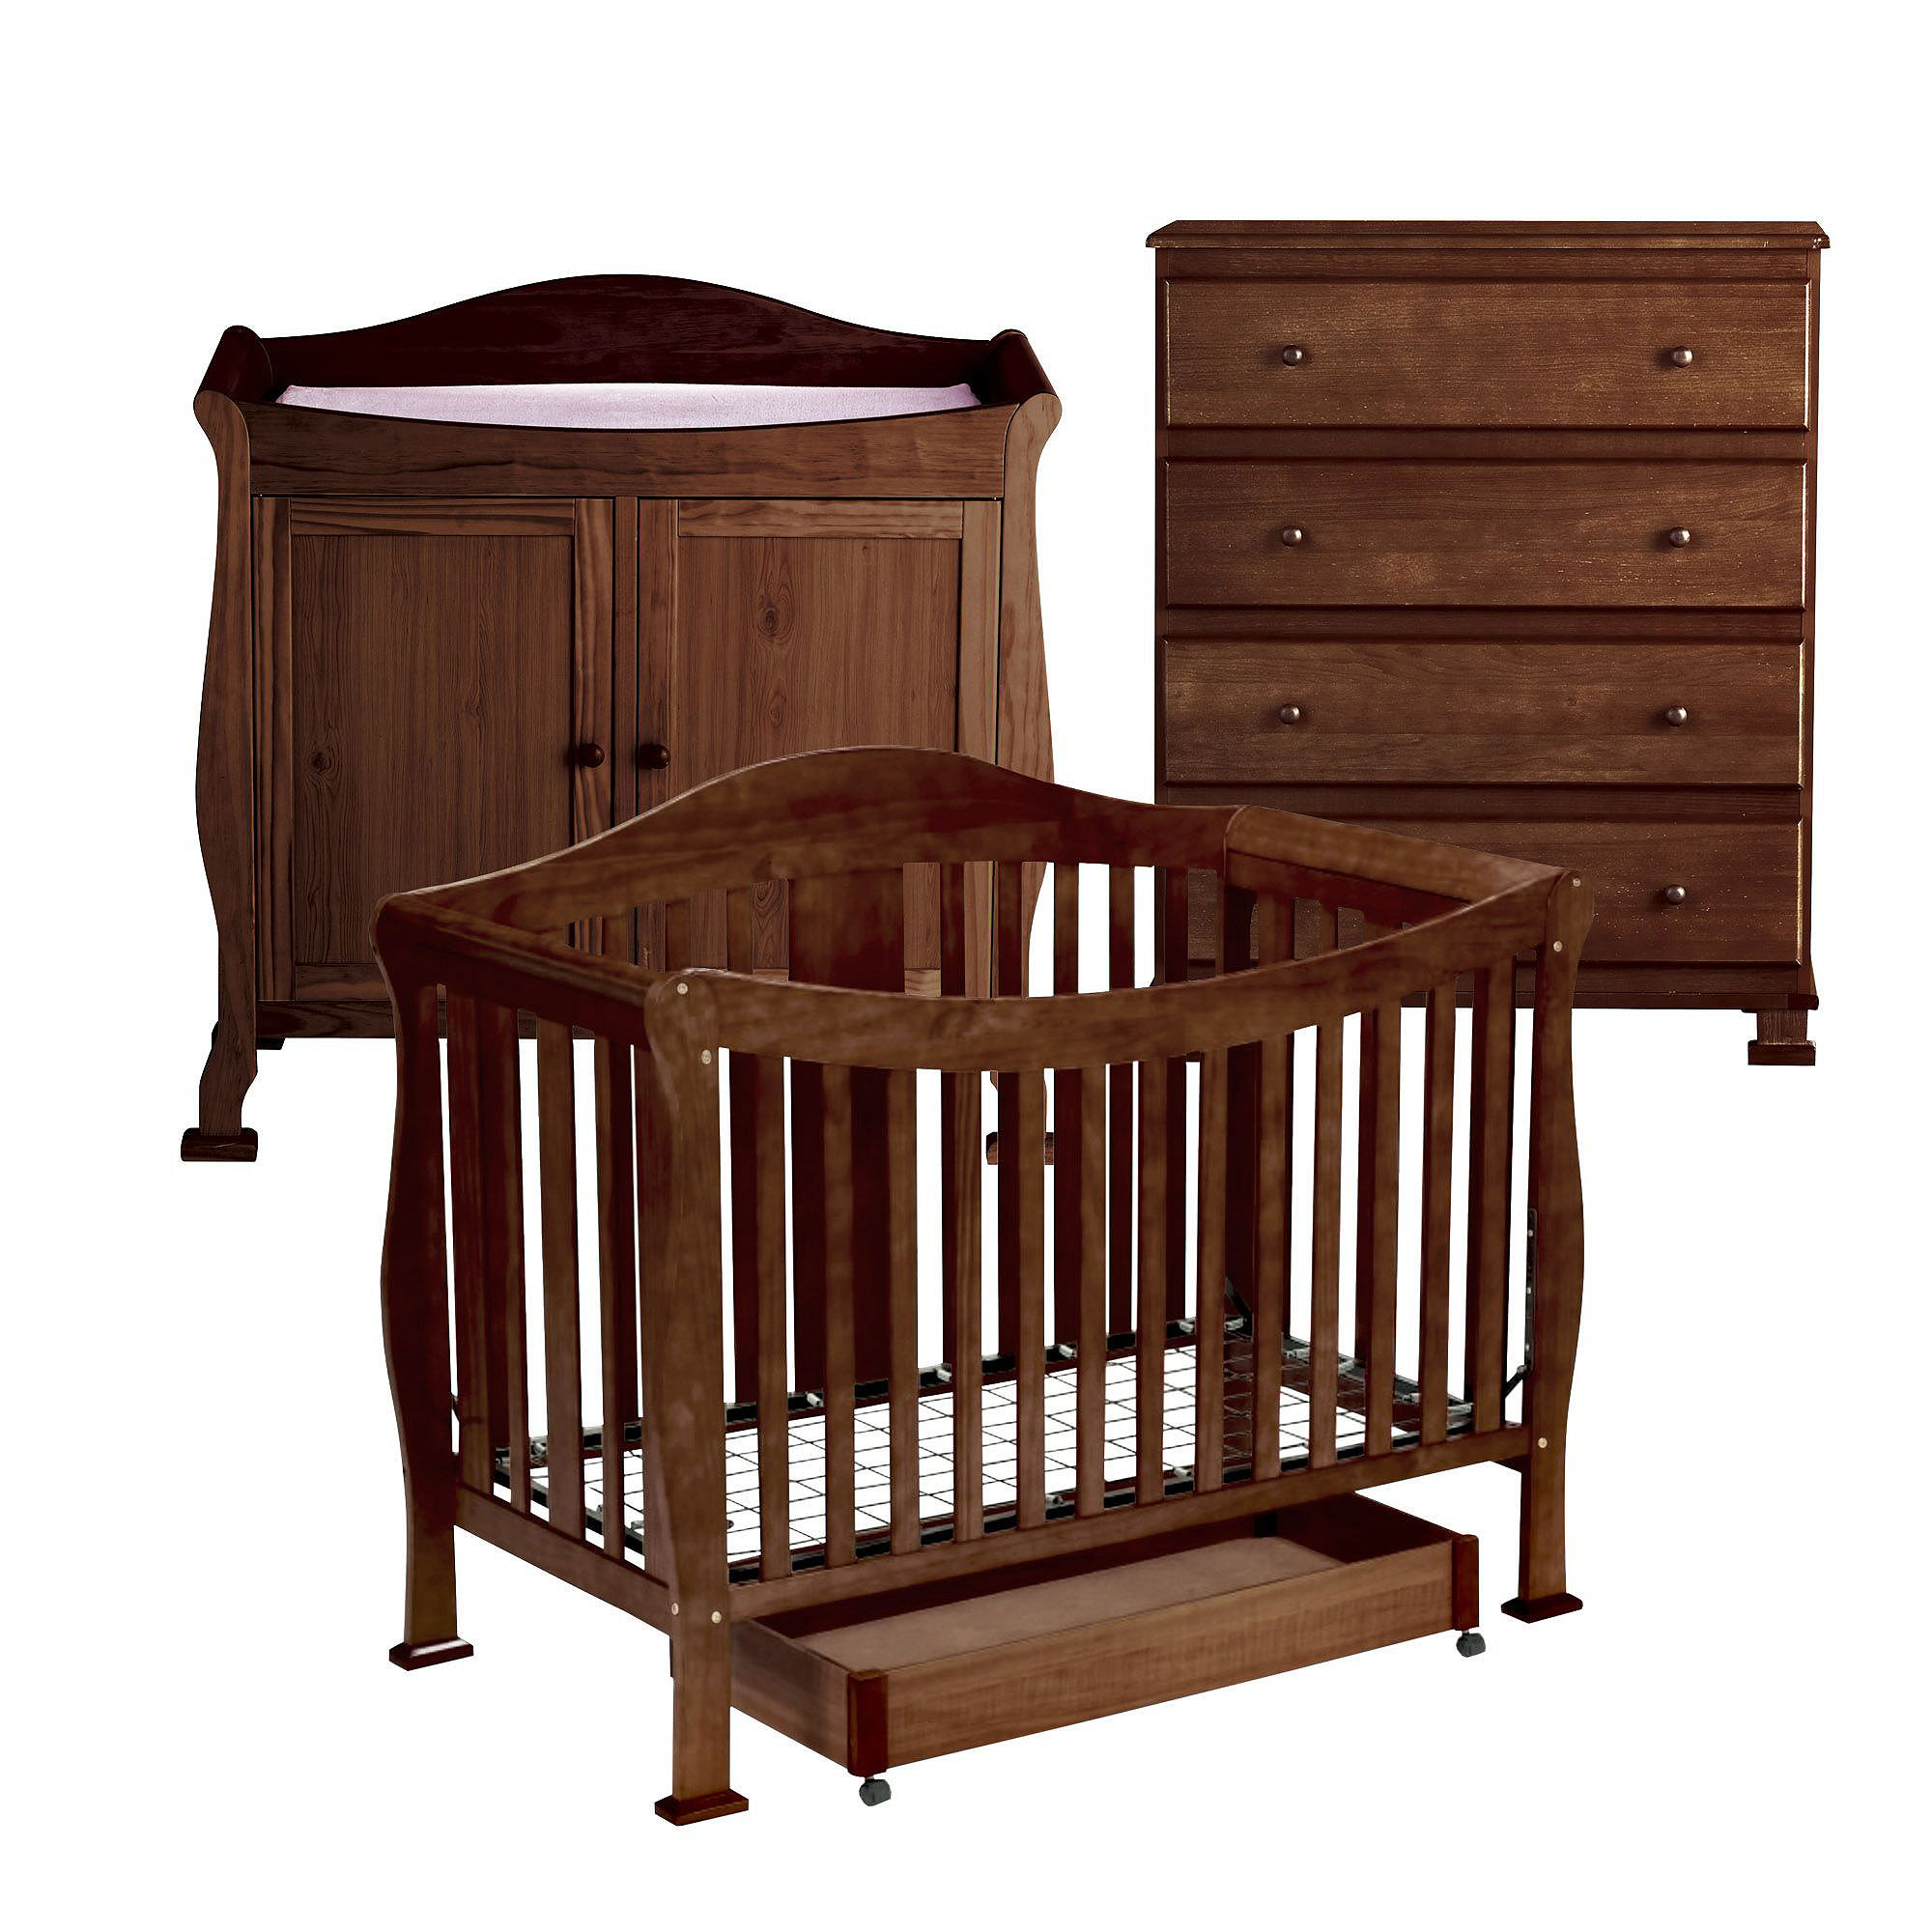 Inspirational jcpenney baby furniture new - Furniture image ...